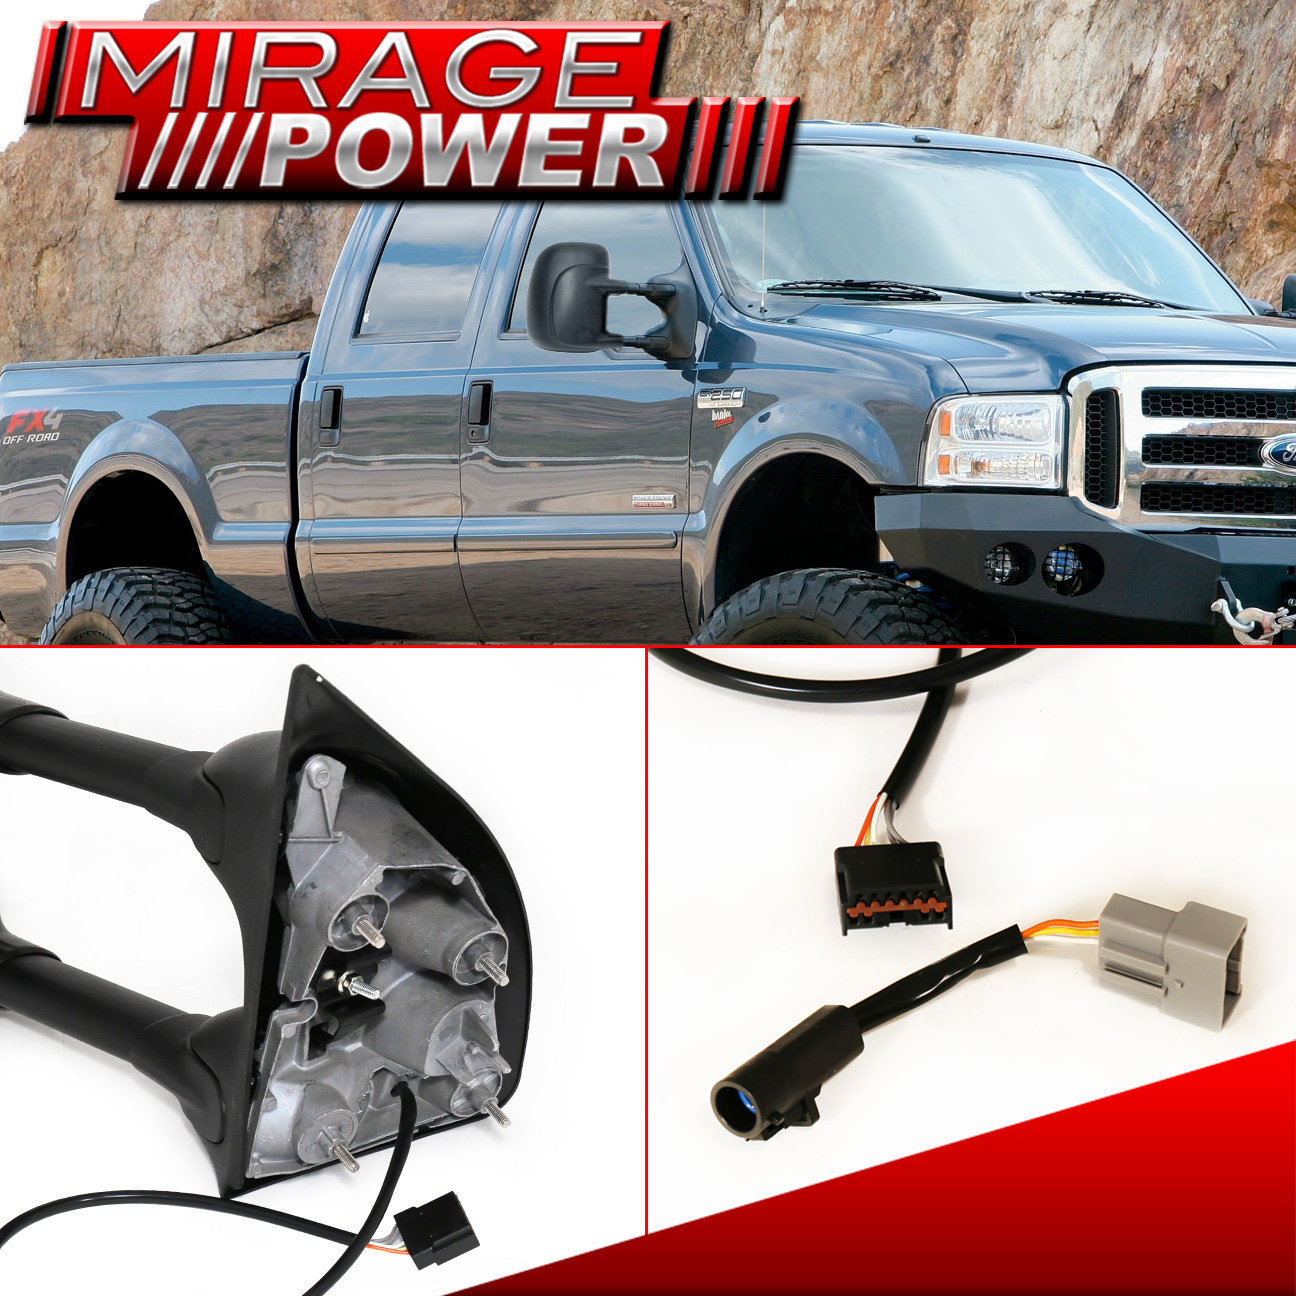 Ford F 450 Towing: Towing Side Mirrors Power Pair 99-07 Ford F250/F350/F450